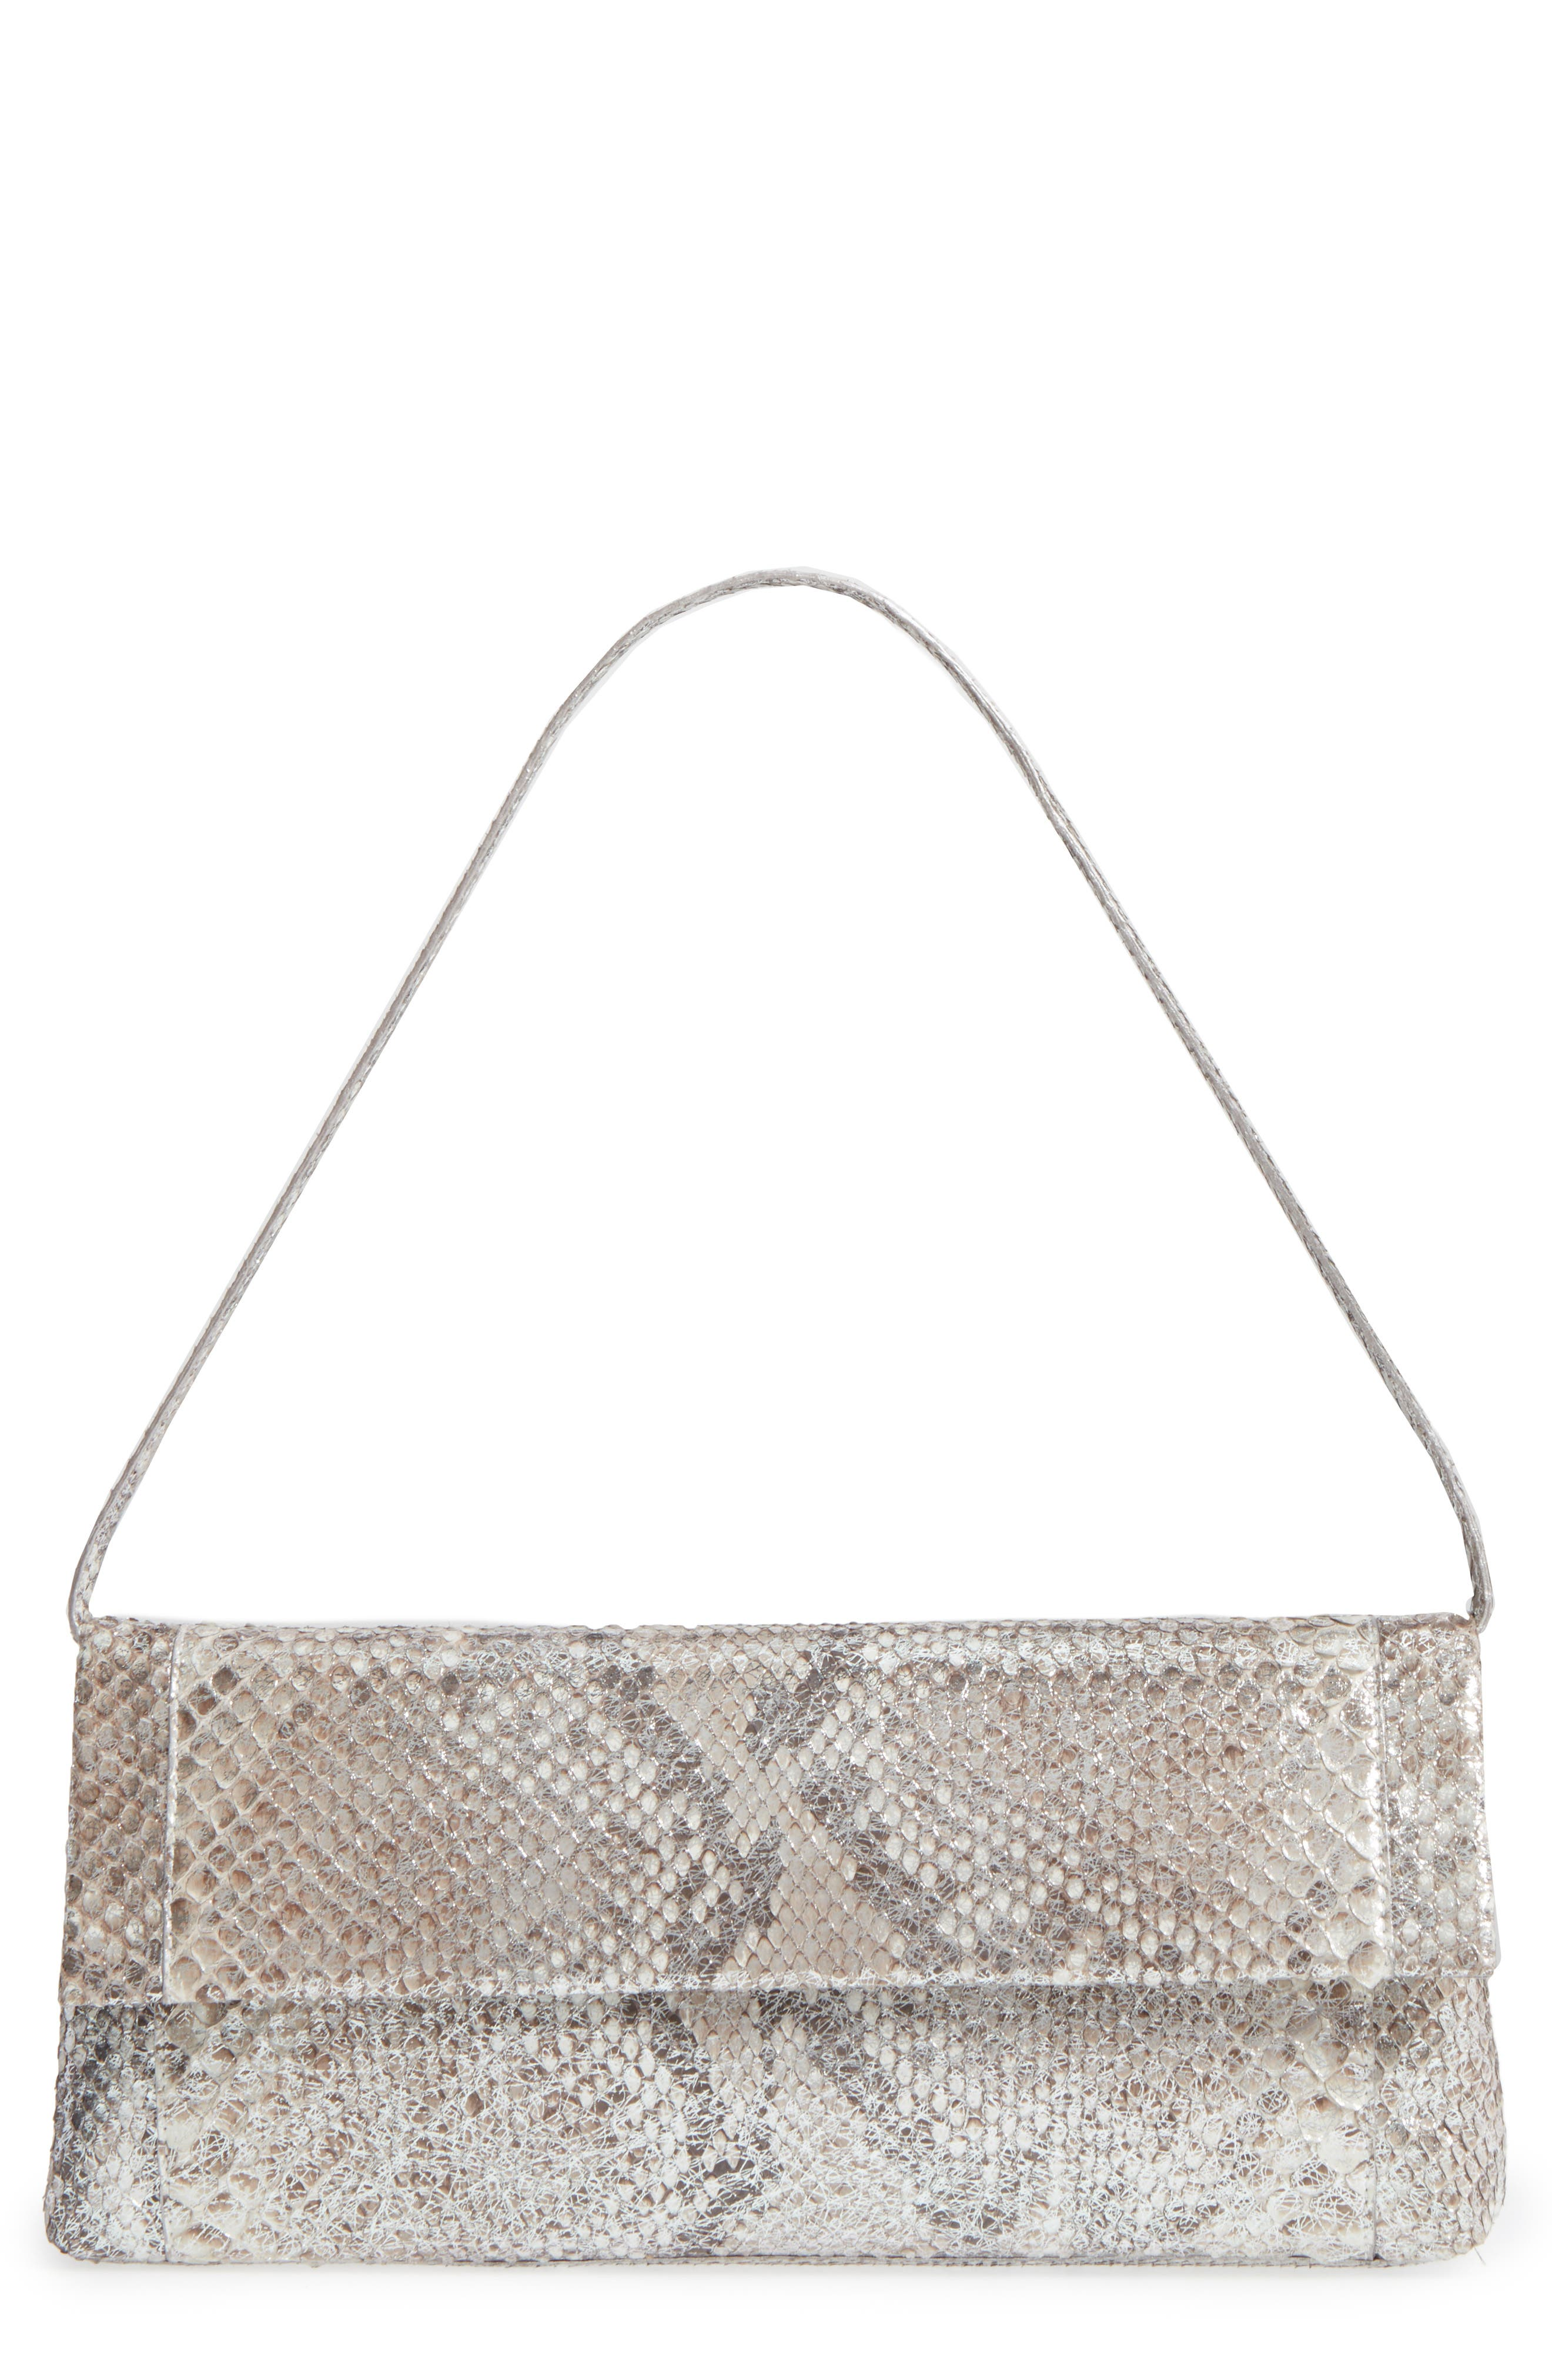 Alternate Image 1 Selected - Nancy Gonzalez Gotham Genuine Python Metallic Clutch